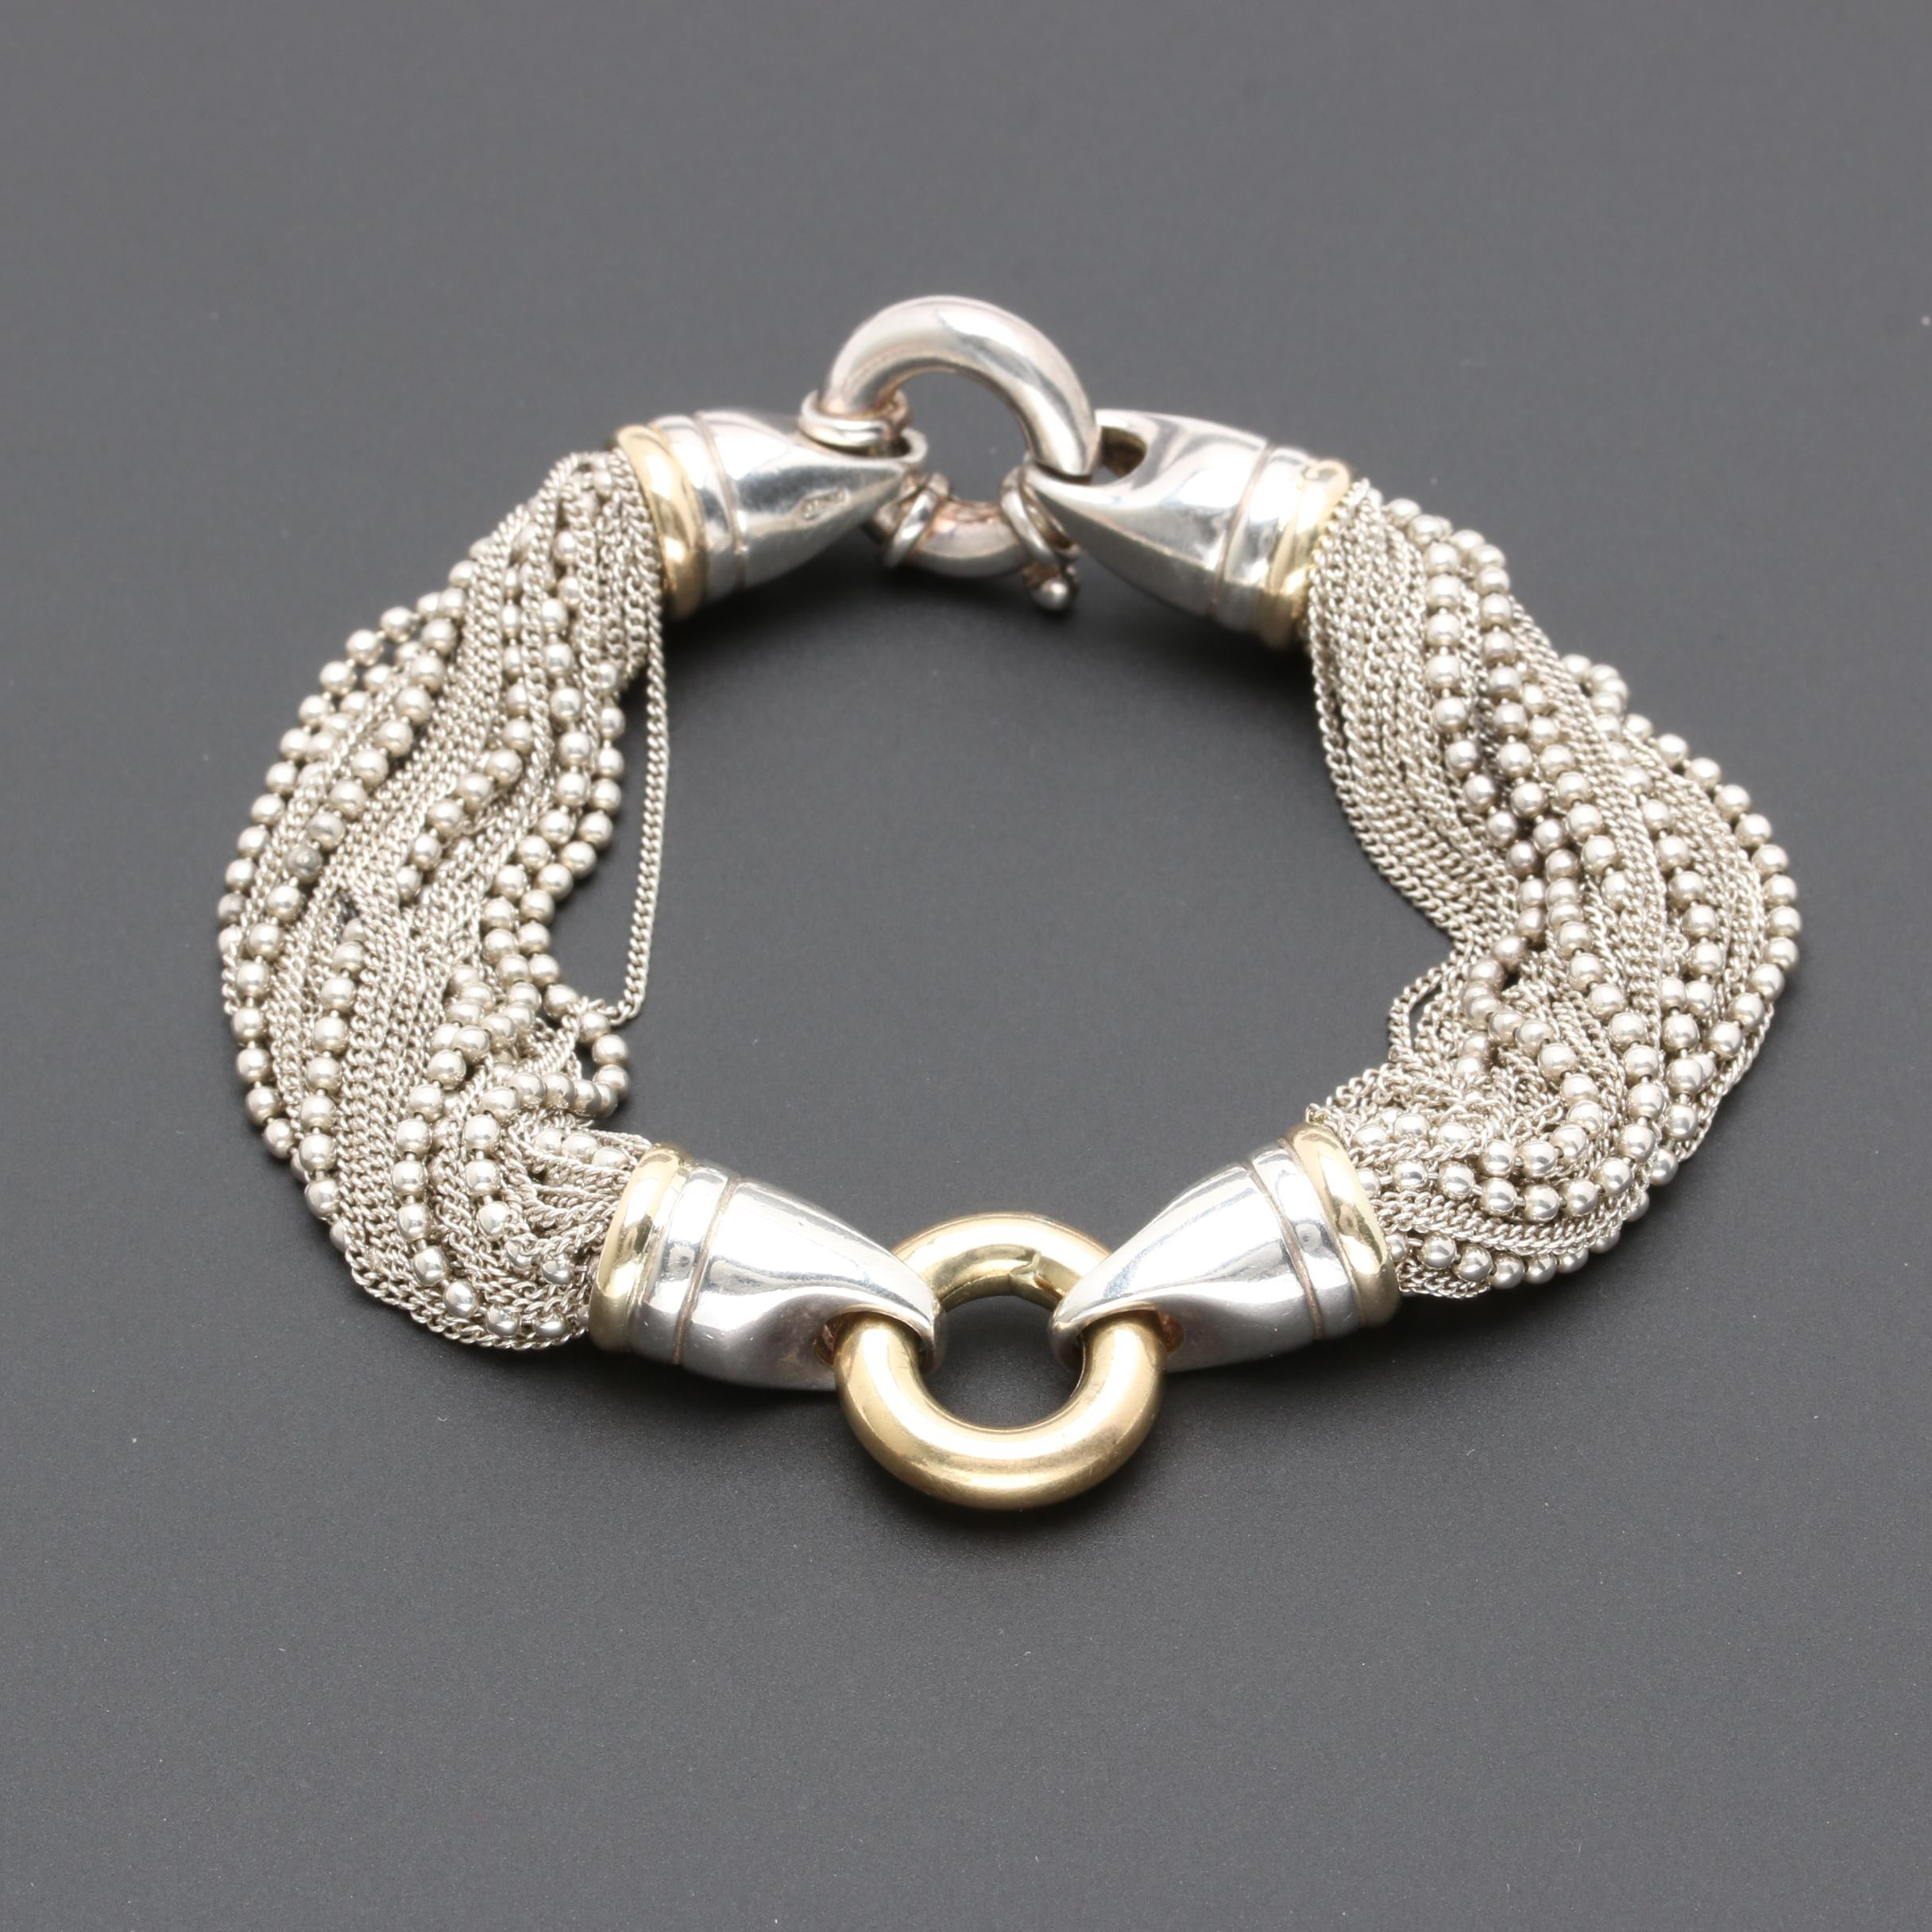 Italian Sterling Silver Bracelet with 18K Yellow Gold Accents